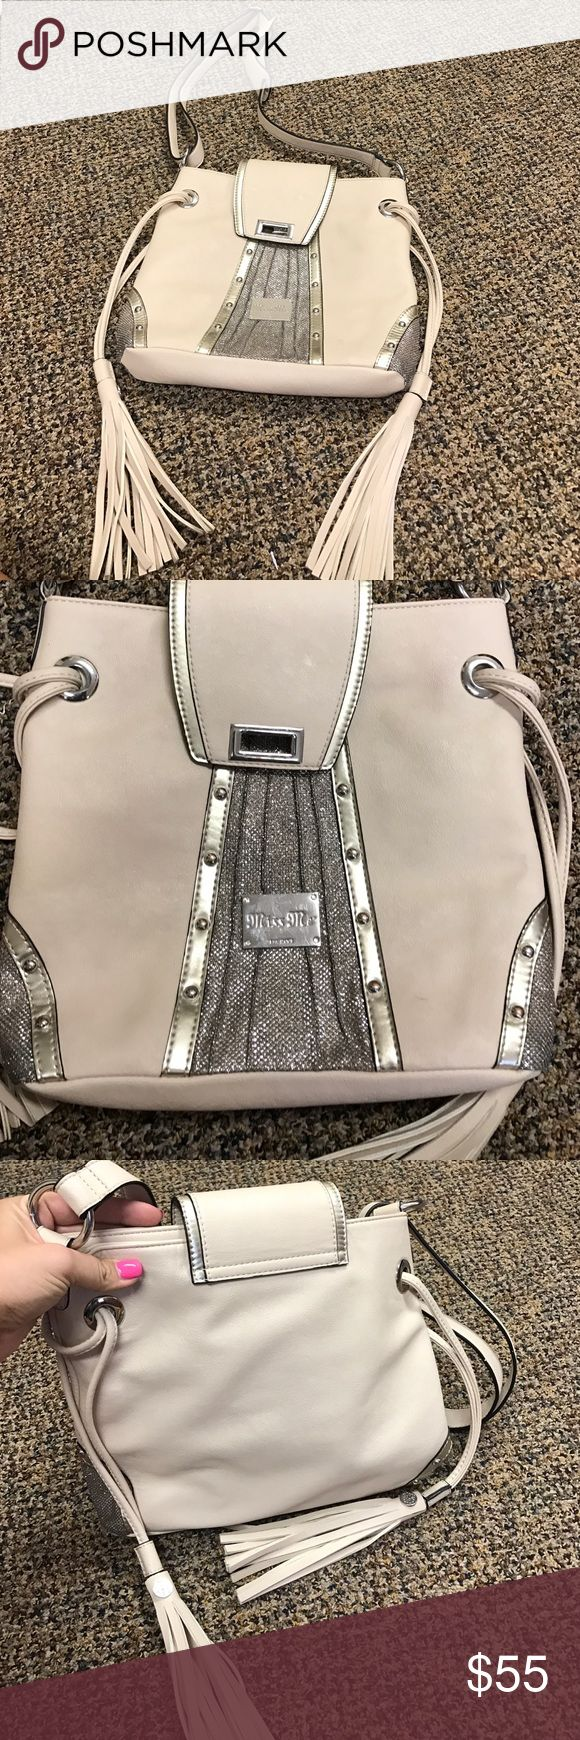 Beige Miss Me purse Brand new without tags never has been worn it was bought from the Buckle and is Miss Me brand, it has an adjustable strap and is in very good condition Miss Me Bags Crossbody Bags